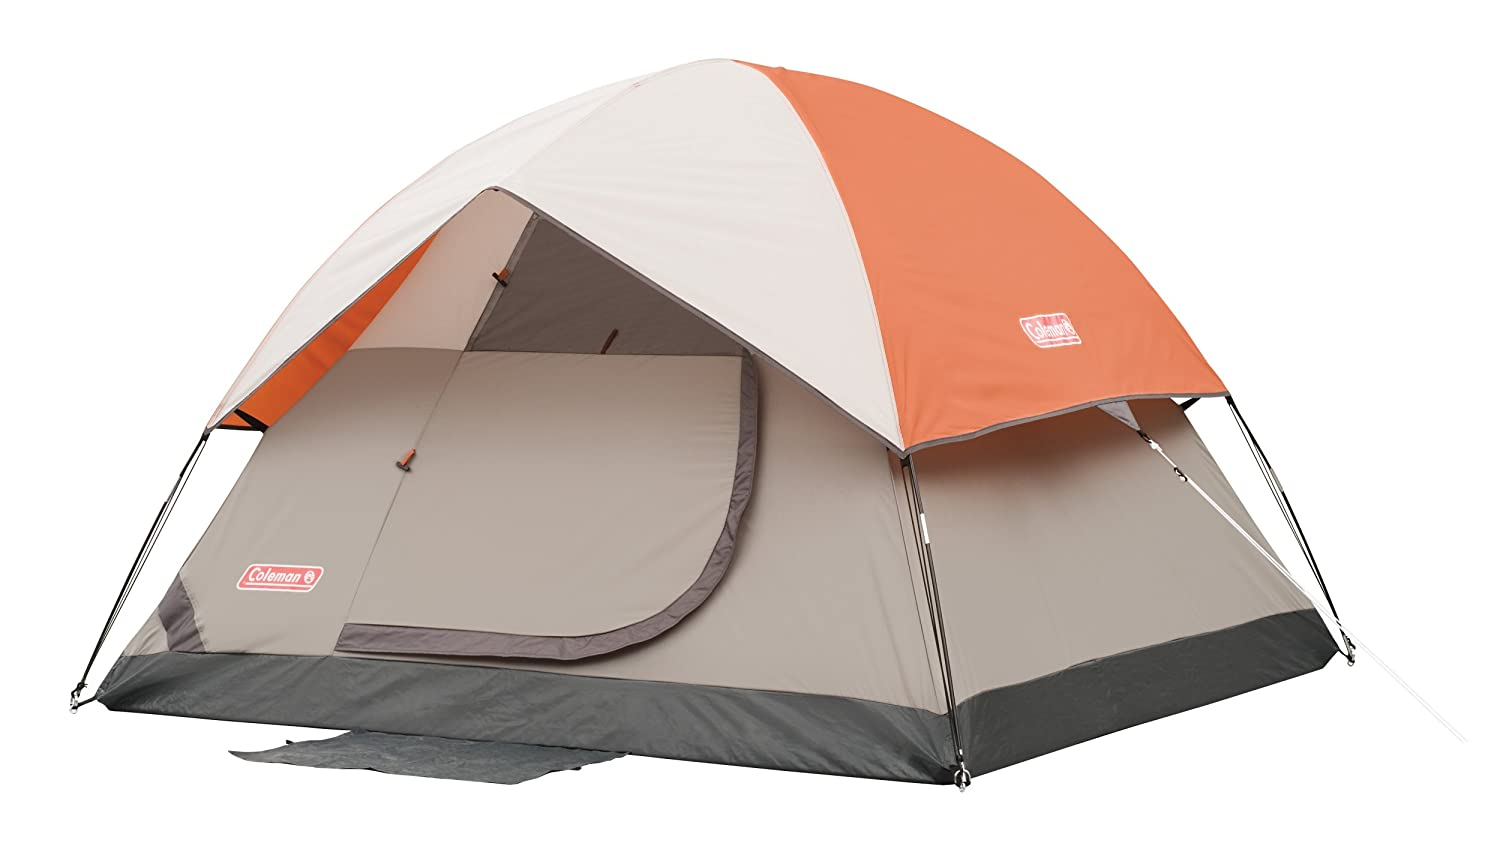 Amazon.com  Coleman SunDome 7-Foot by 7-Foot 3-Person Dome Tent (Orange/Gray)  Sports u0026 Outdoors  sc 1 st  Amazon.com & Amazon.com : Coleman SunDome 7-Foot by 7-Foot 3-Person Dome Tent ...